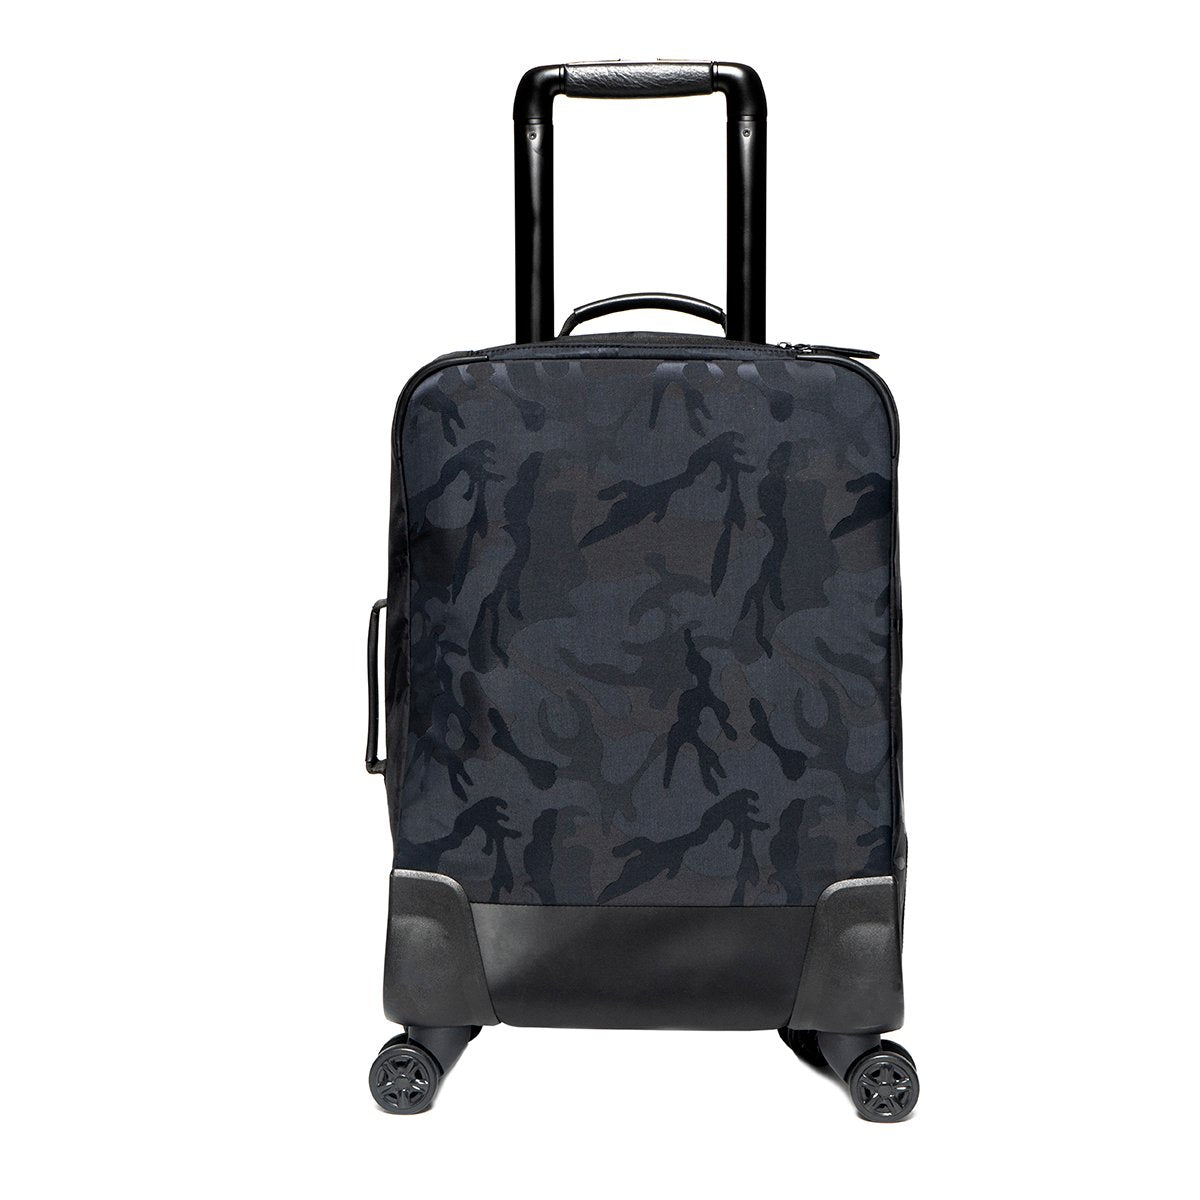 "KNOMO Park Lane Boarding Tote From Back 15"" -  Black Camouflage 